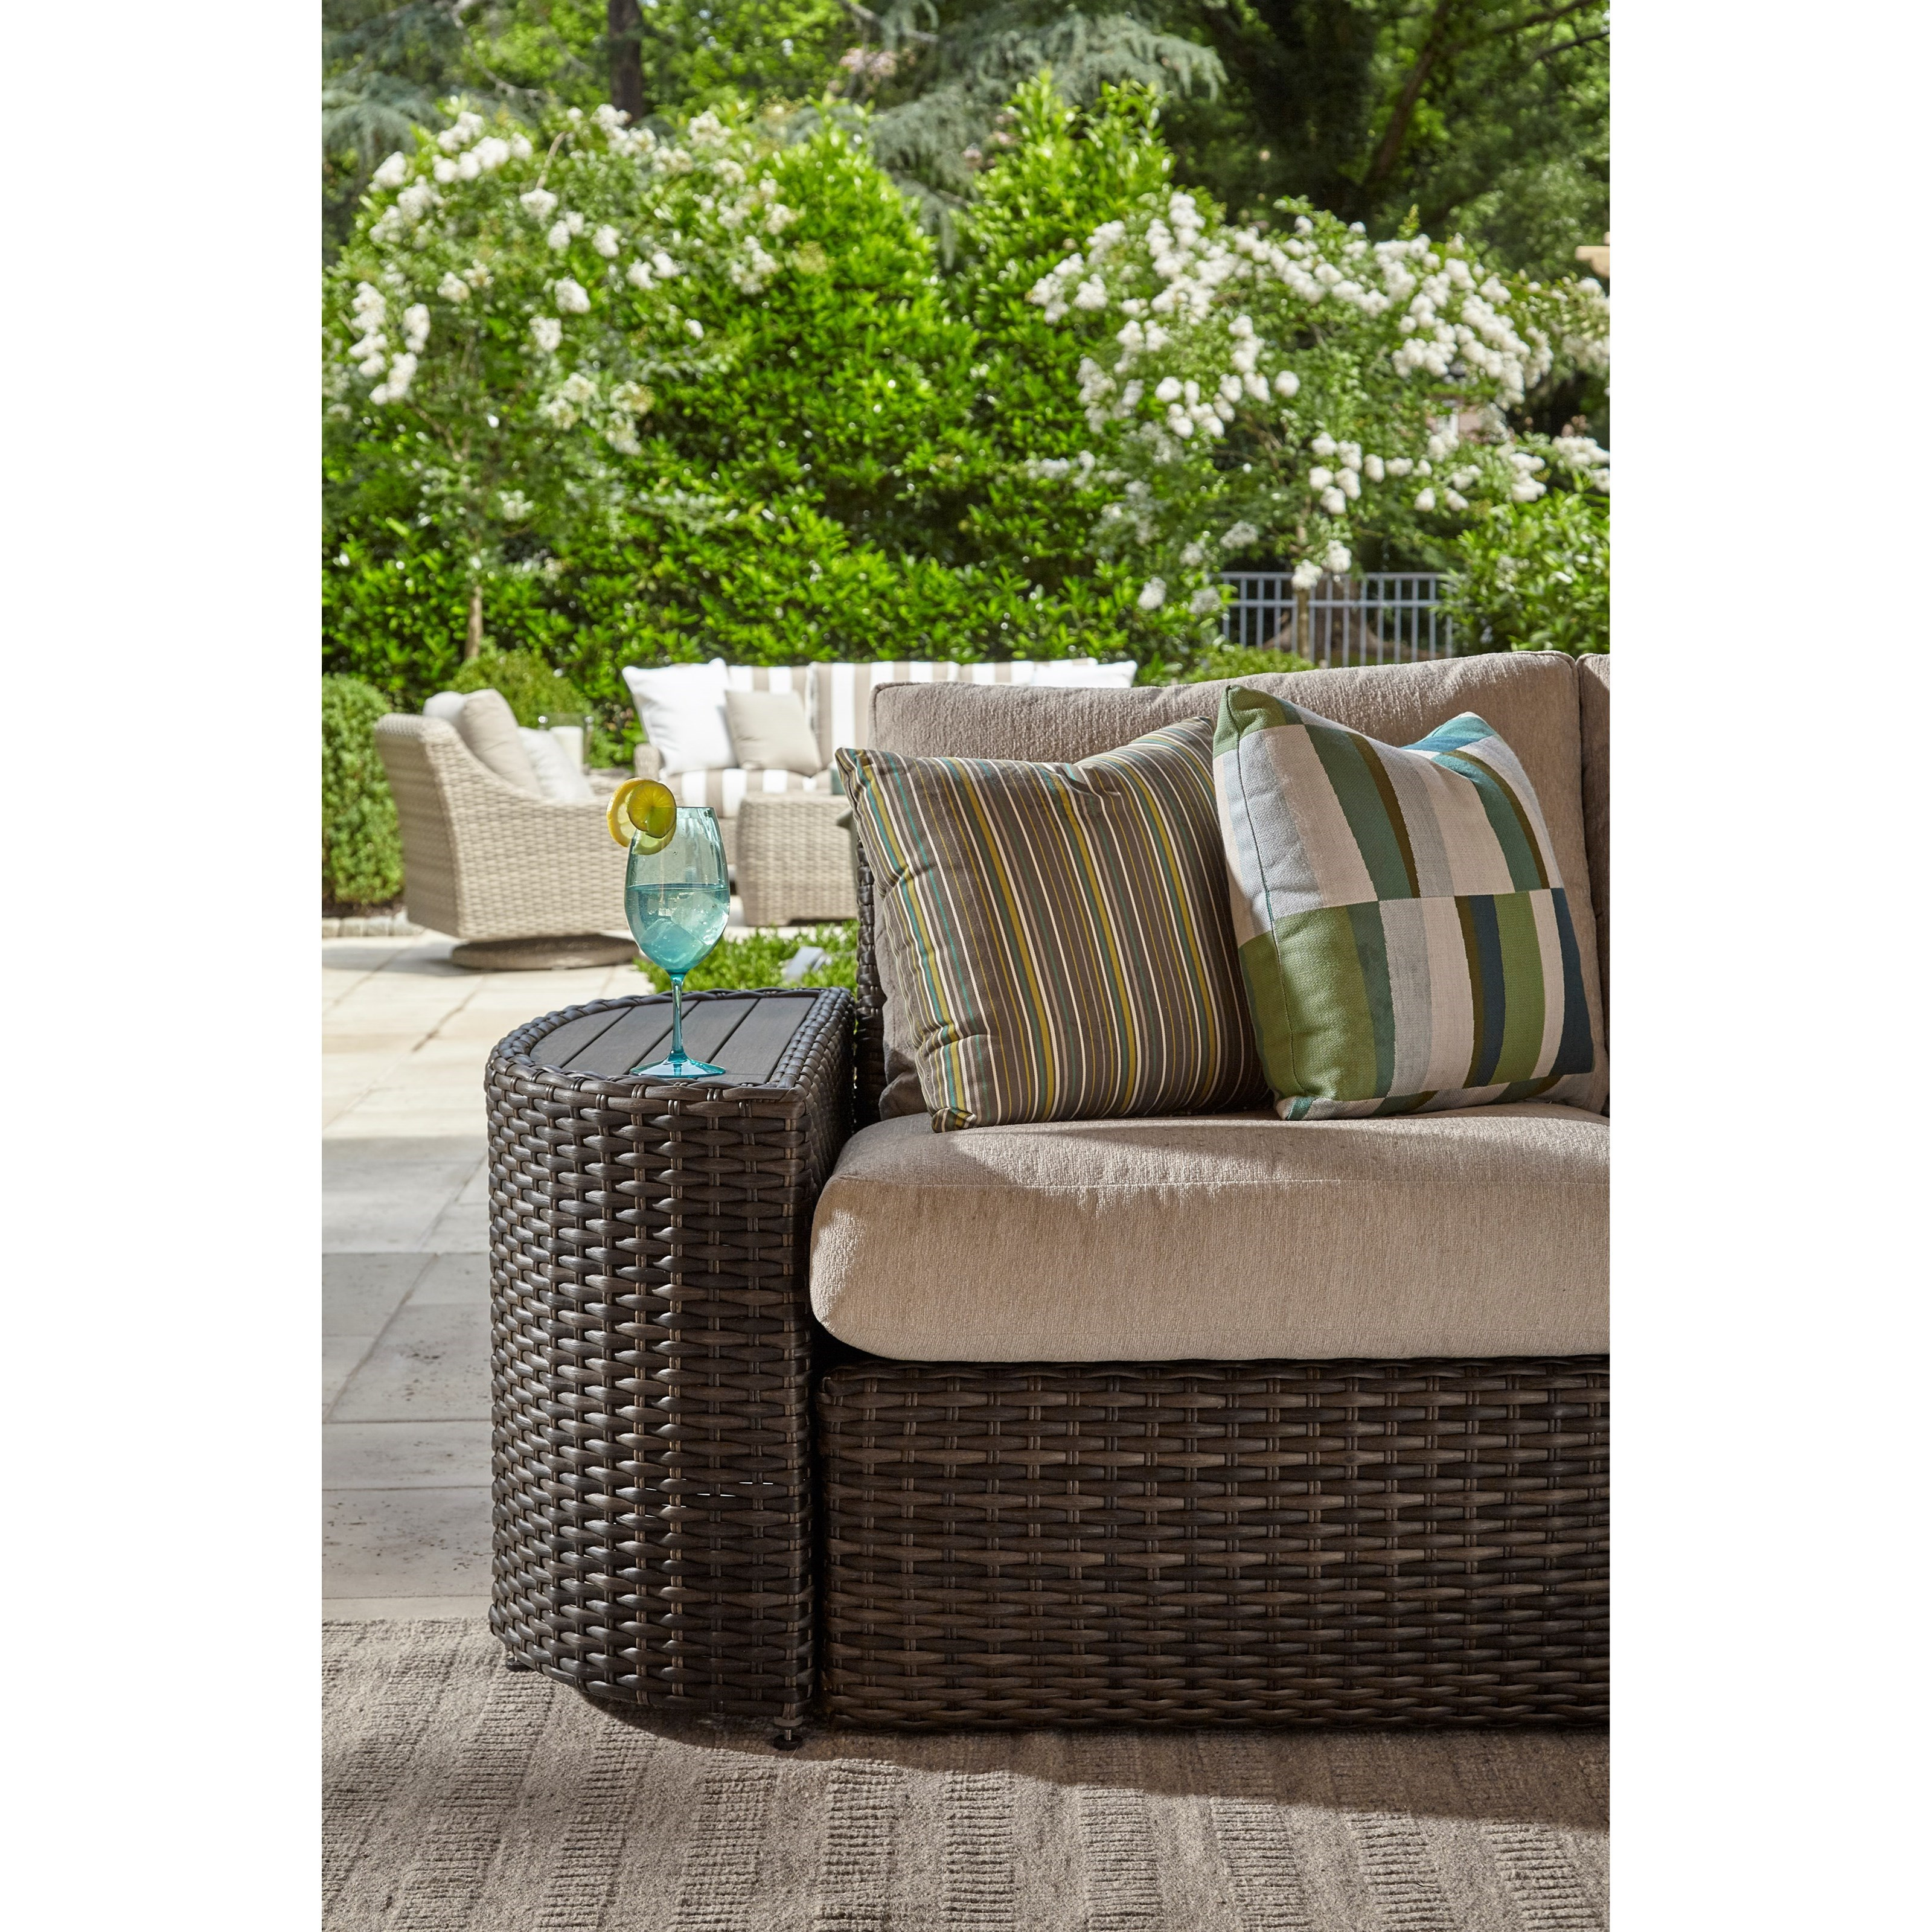 Klaussner Outdoor Mod Series Cava 4 Seat Sectional With